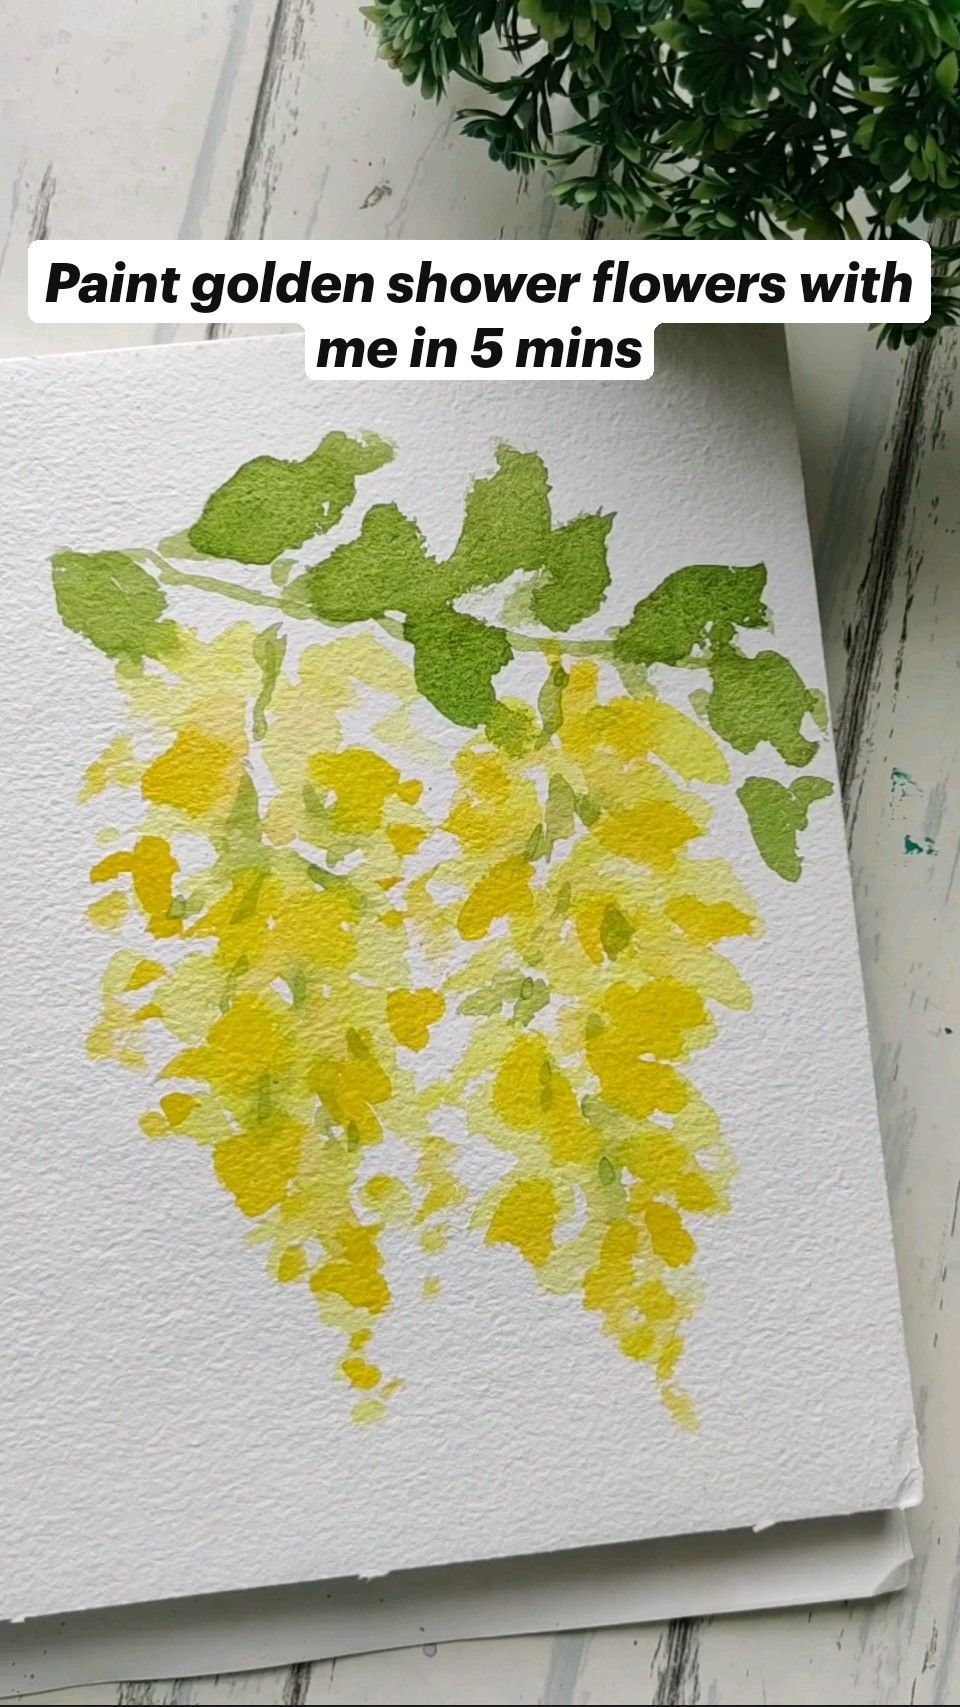 Paint Watercolor golden shower flowers with me in 5 mins